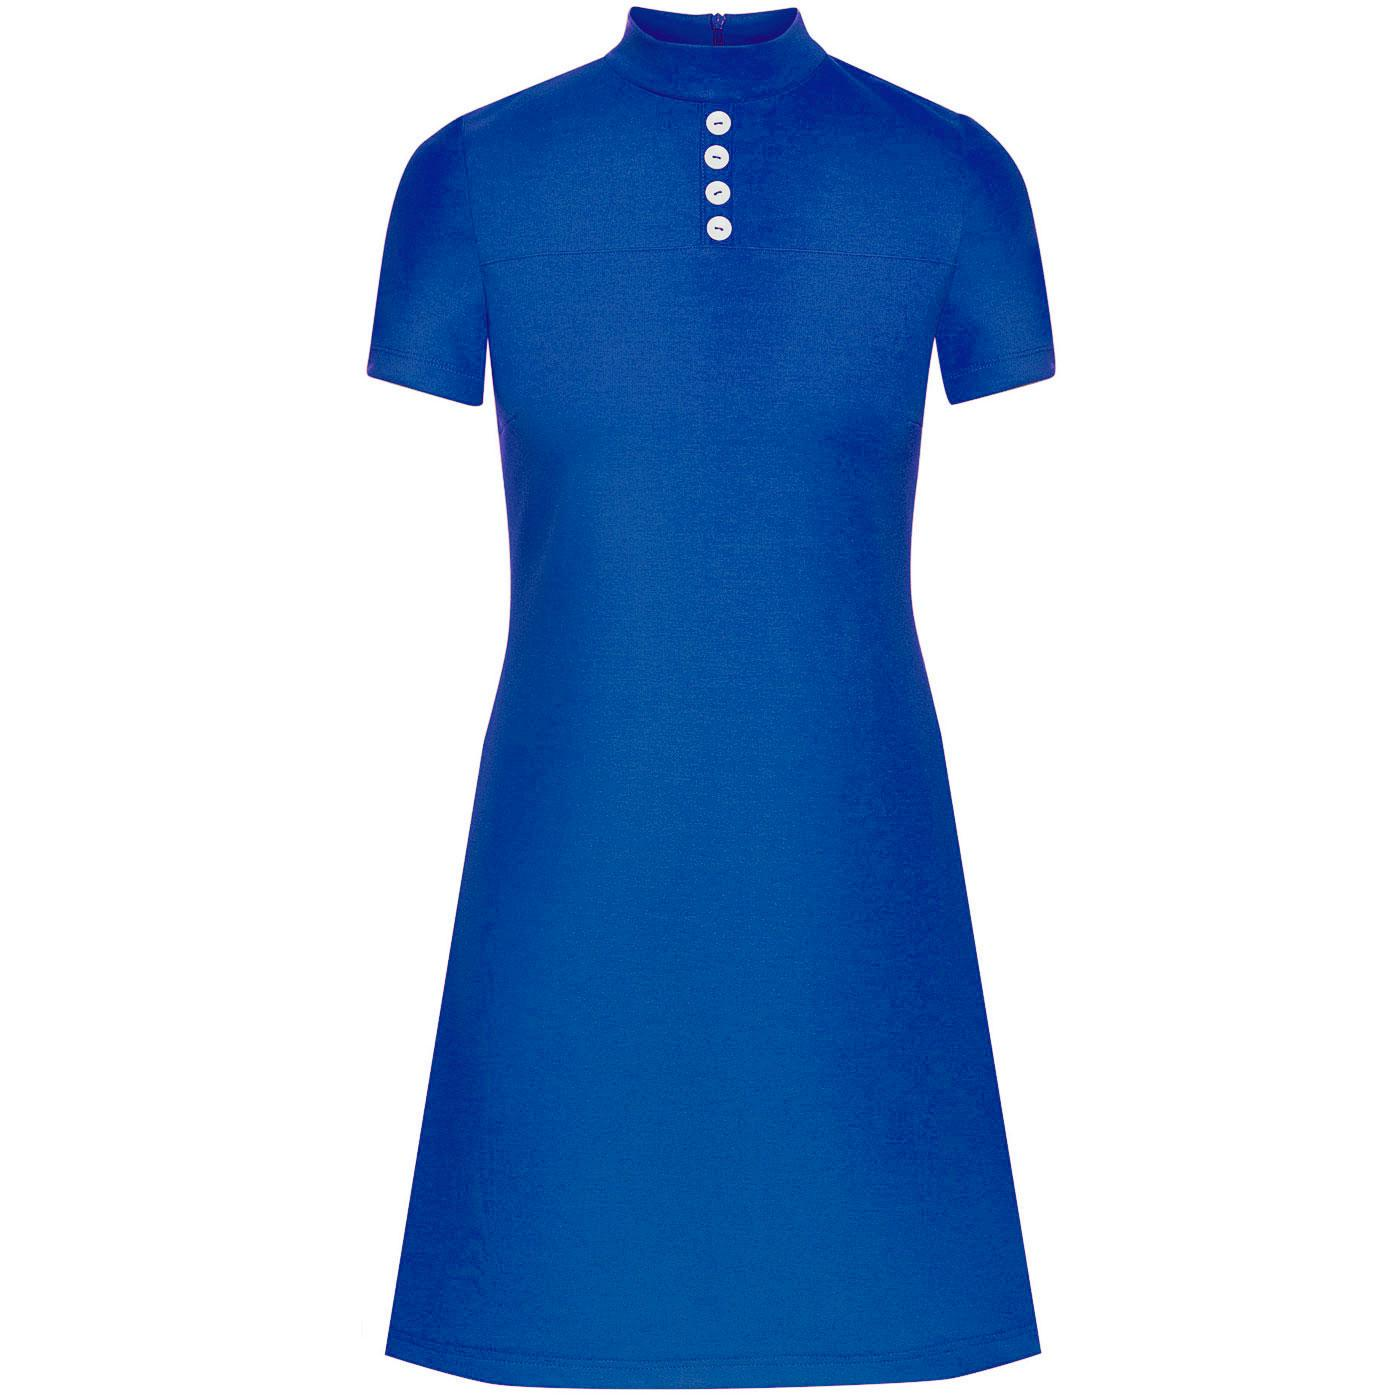 Pure Joy MADEMOISELLE YEYE 1960s Mod Dress (Blue)